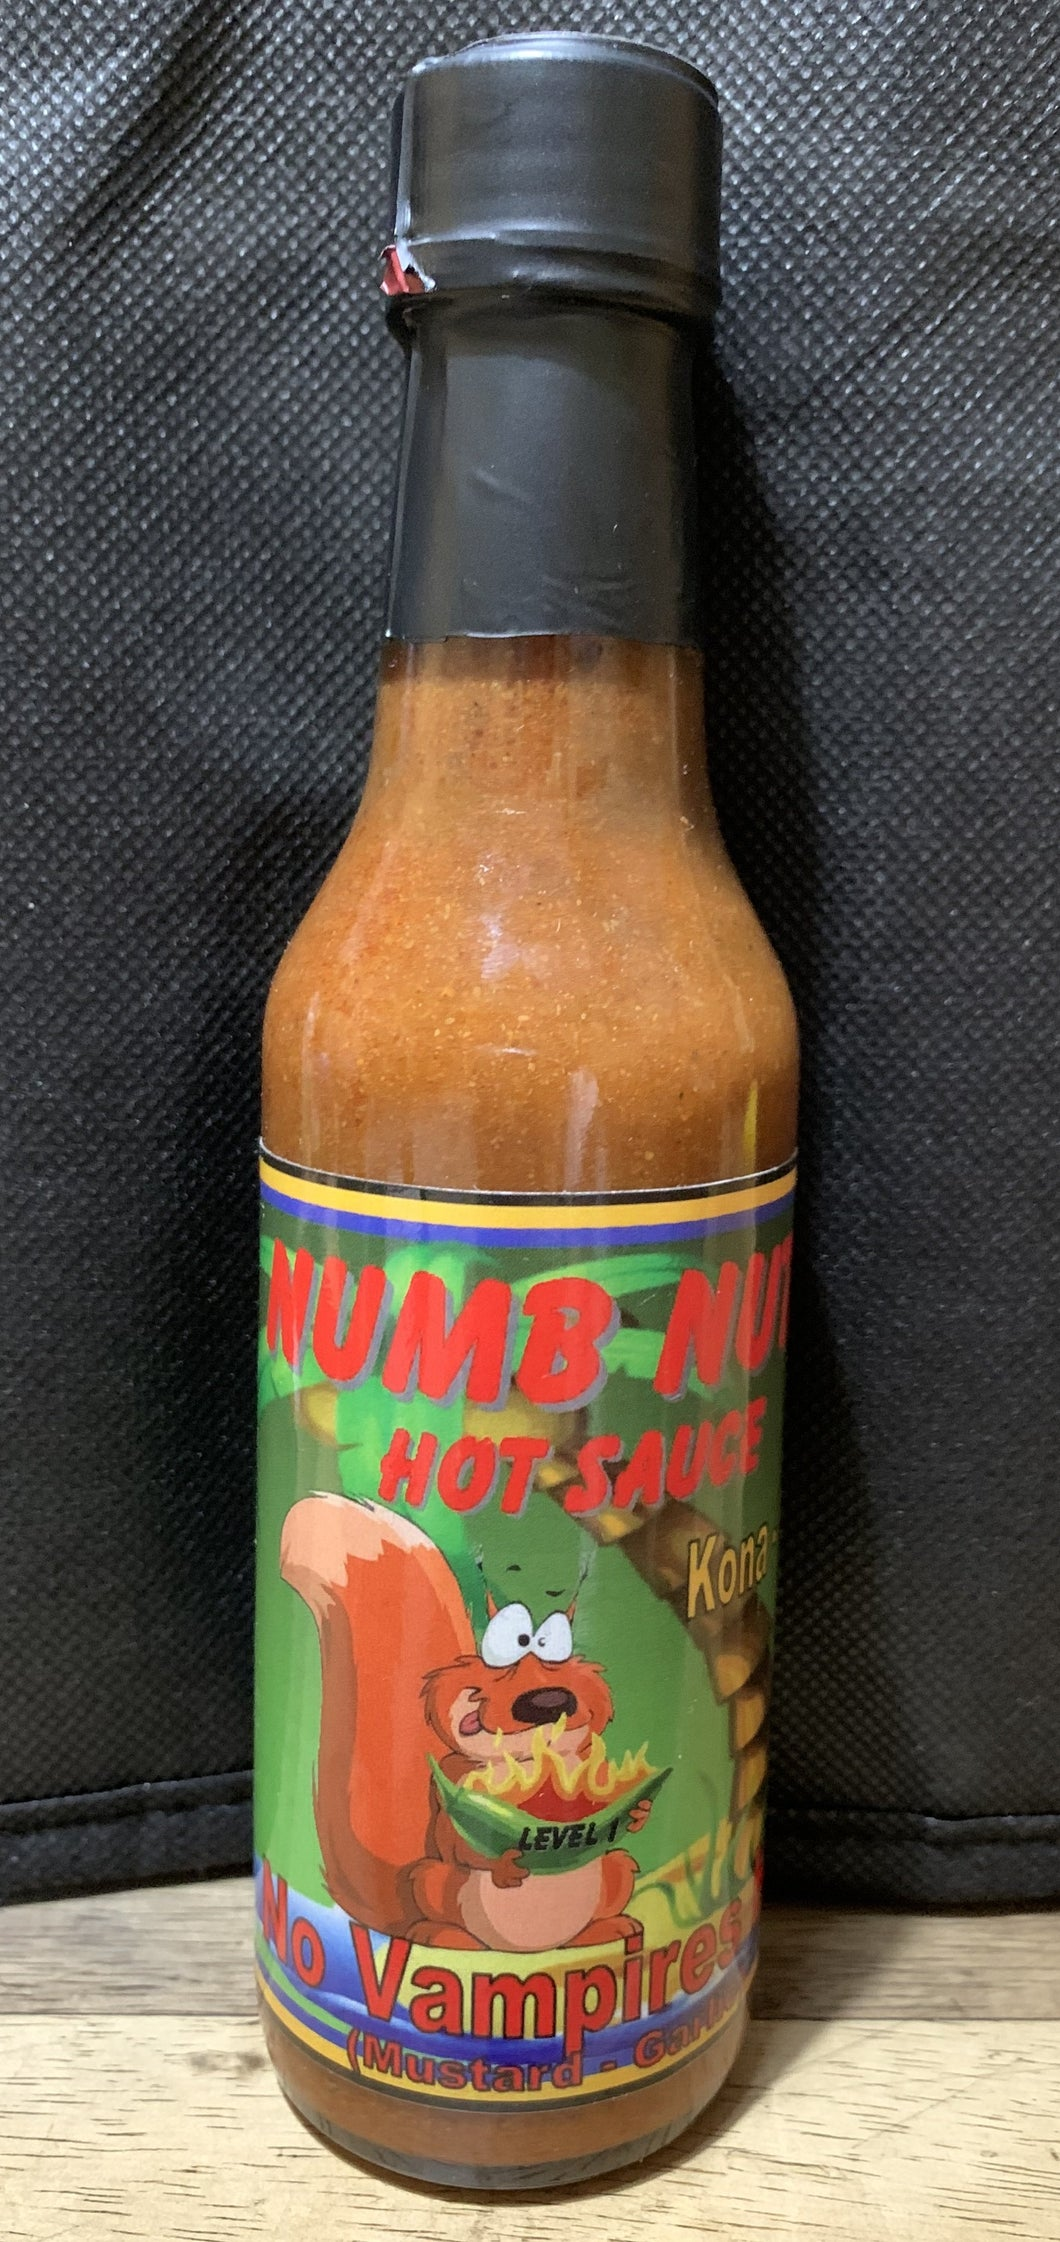 Numb Nuts Hot Sauce - No Vampires Here (Level 1)